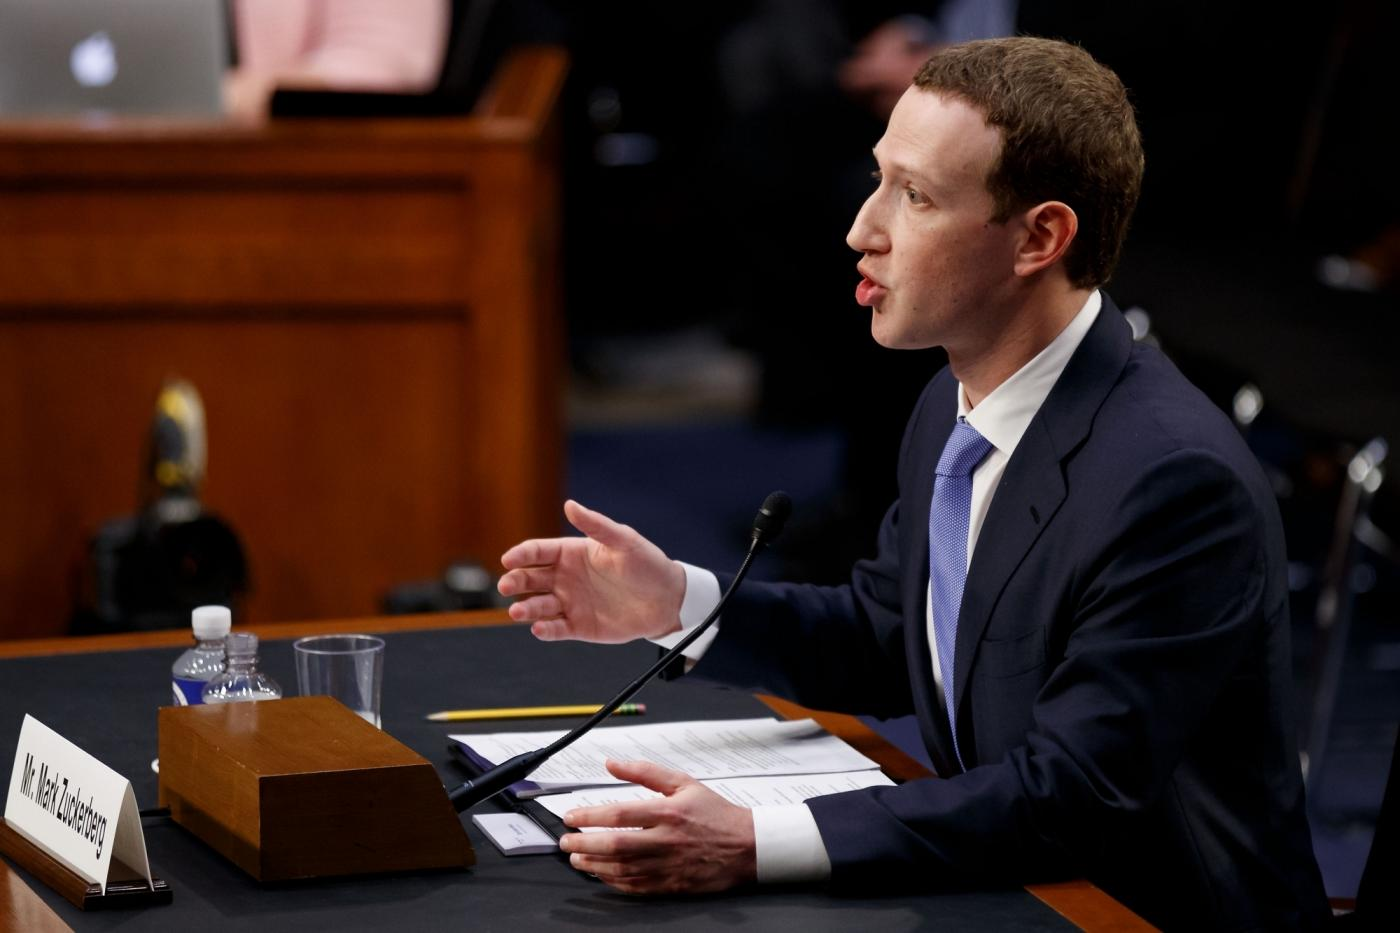 """WASHINGTON, April 10, 2018 (Xinhua) -- Facebook CEO Mark Zuckerberg testifies at a joint hearing of the Senate Judiciary and Commerce committees on Capitol Hill in Washington D.C., United States, on April 10, 2018. Facebook CEO Mark Zuckerberg told Congress in written testimony on Monday that he is """"responsible for"""" not preventing the social media platform from being used for harm, including fake news, foreign interference in elections and hate speech. (Xinhua/Ting Shen/IANS) by ."""